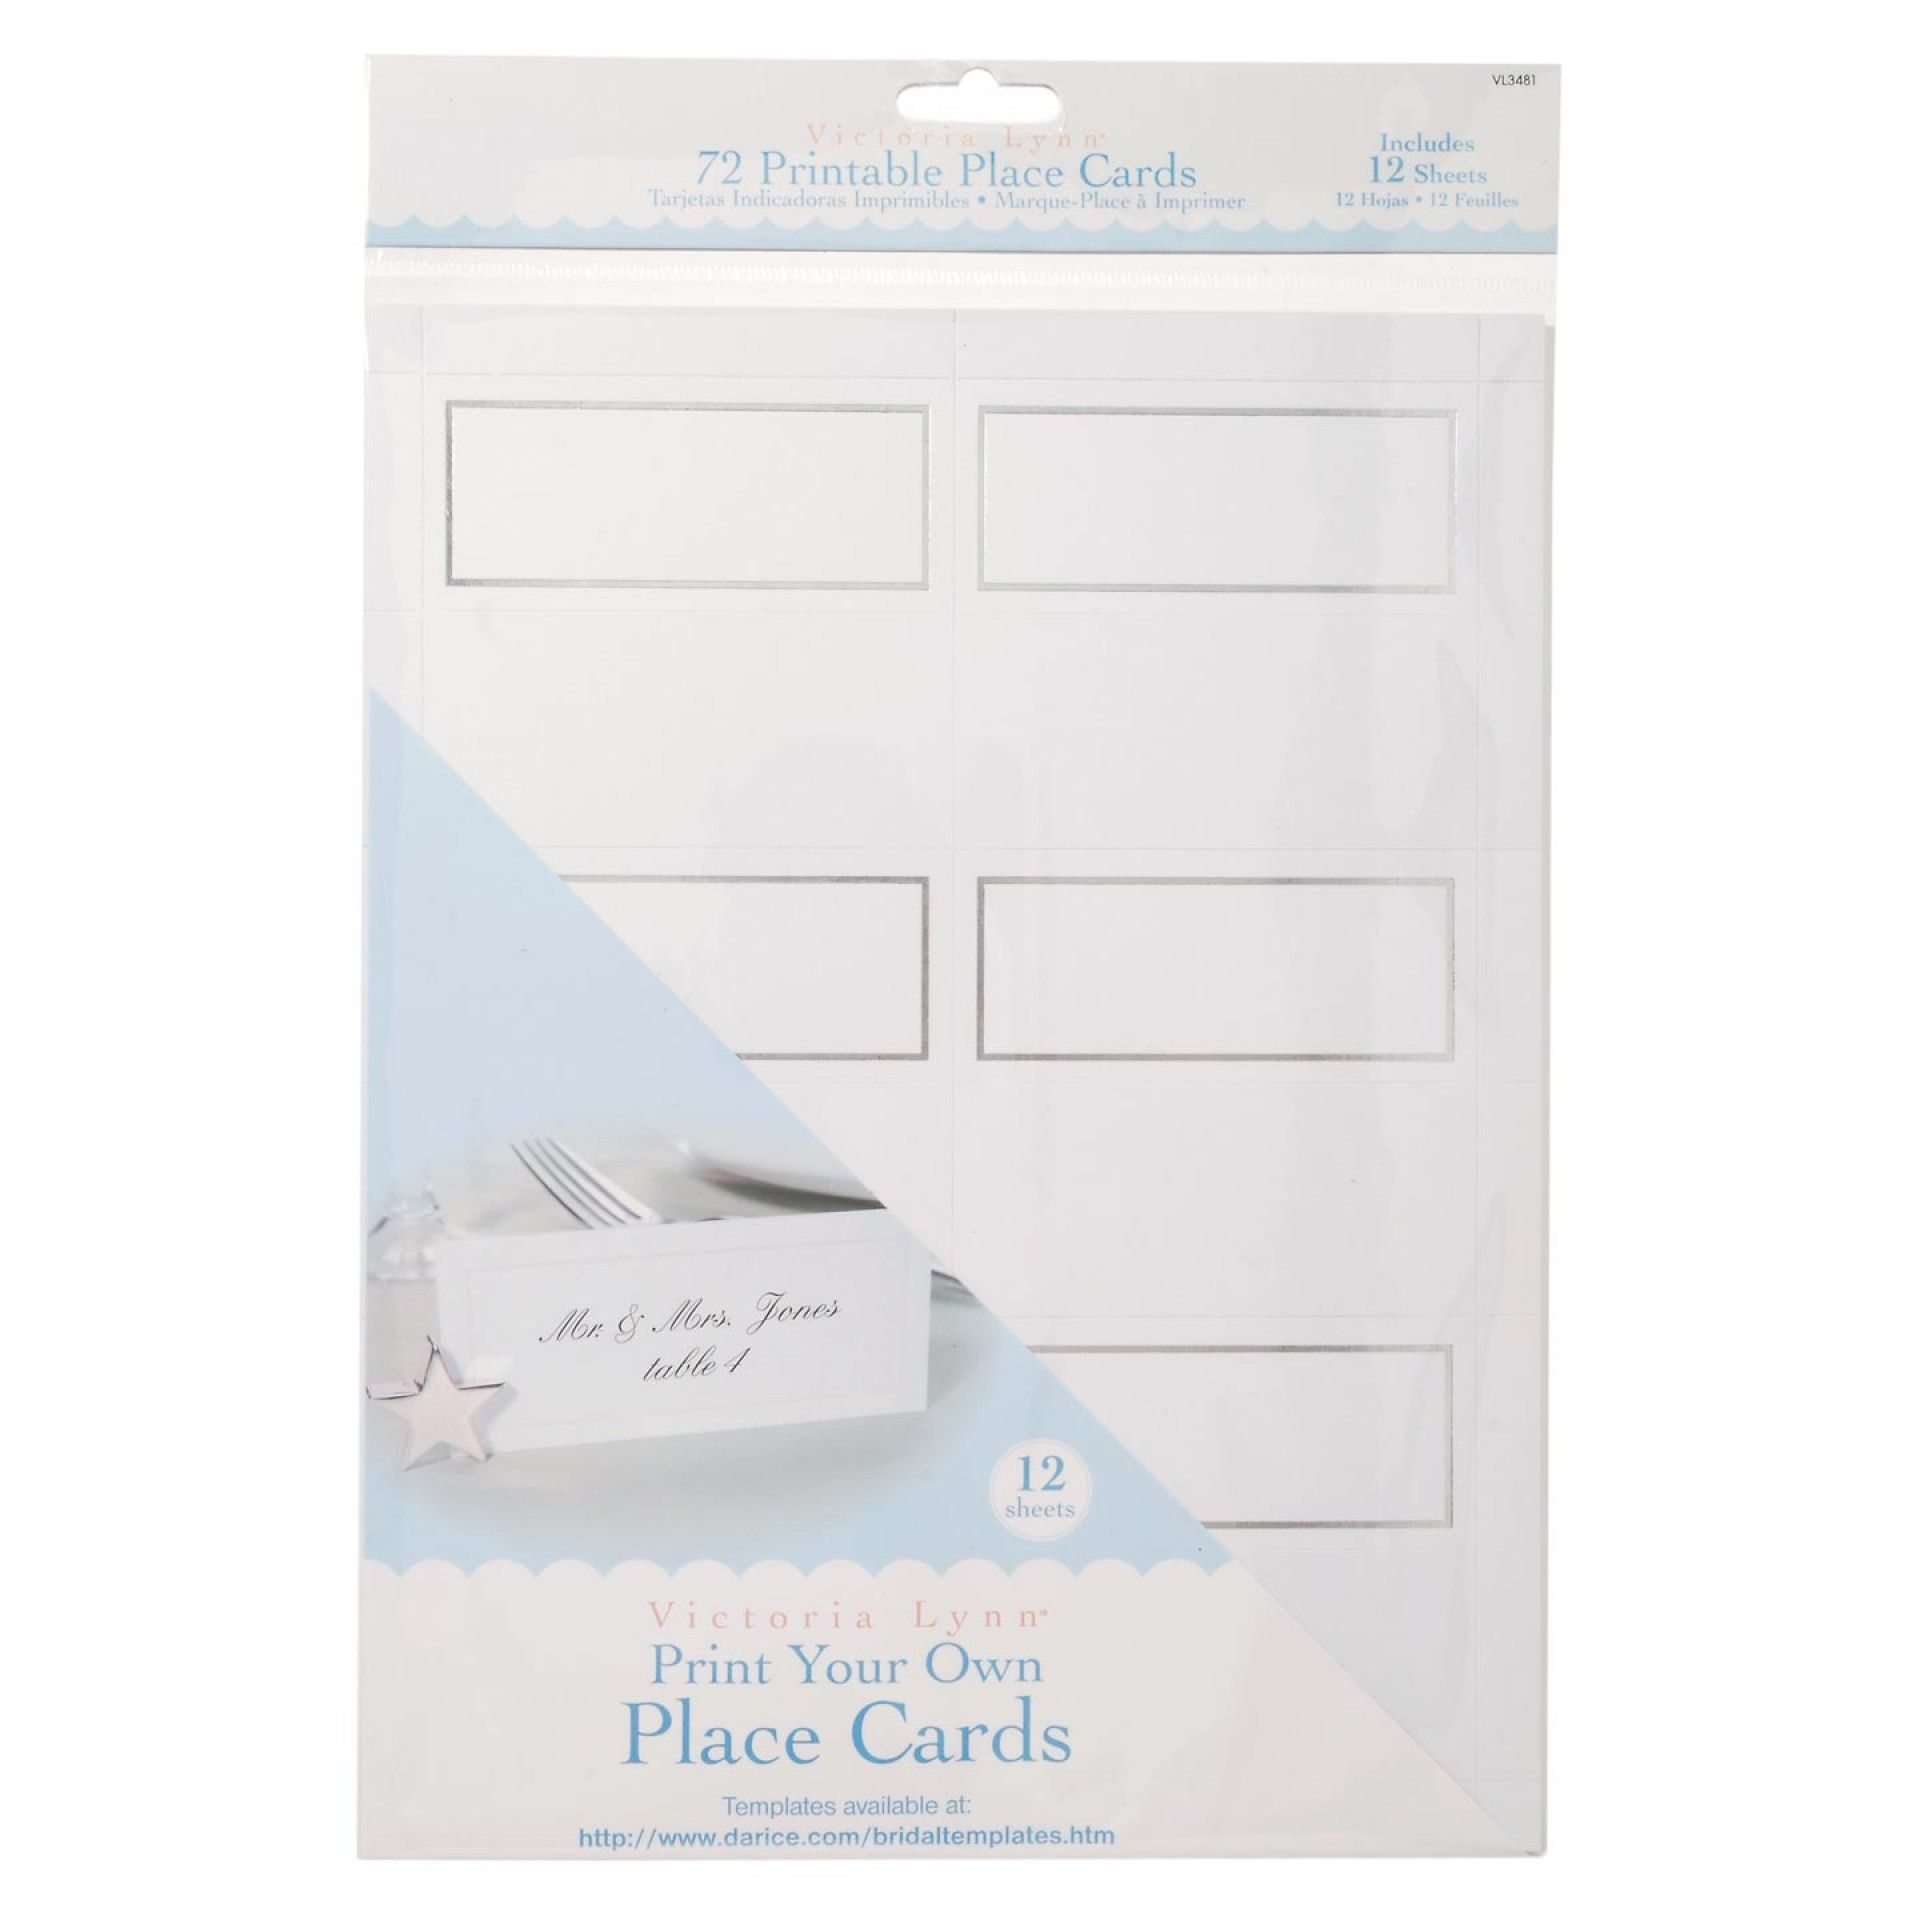 The Awesome 023 Template Ideas Card Printable Place Breathtaking Cards Inside Paper Source Templat Print Your Own Place Cards Printable Place Cards Place Cards